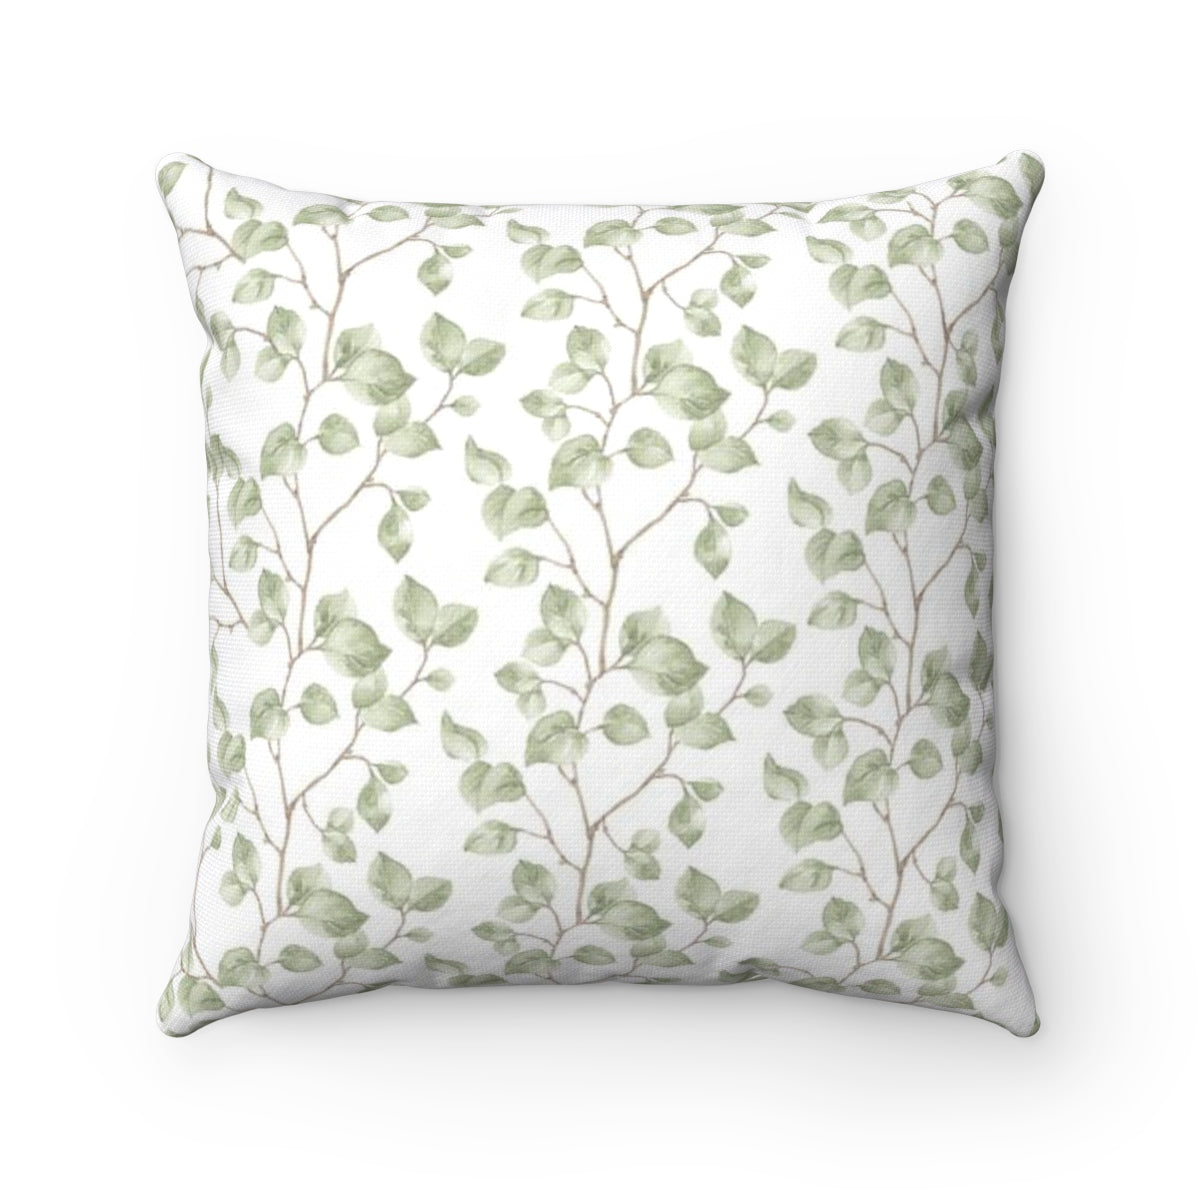 decorative throw pillow with leaf pattern - Liz Kapiloto Art & Design